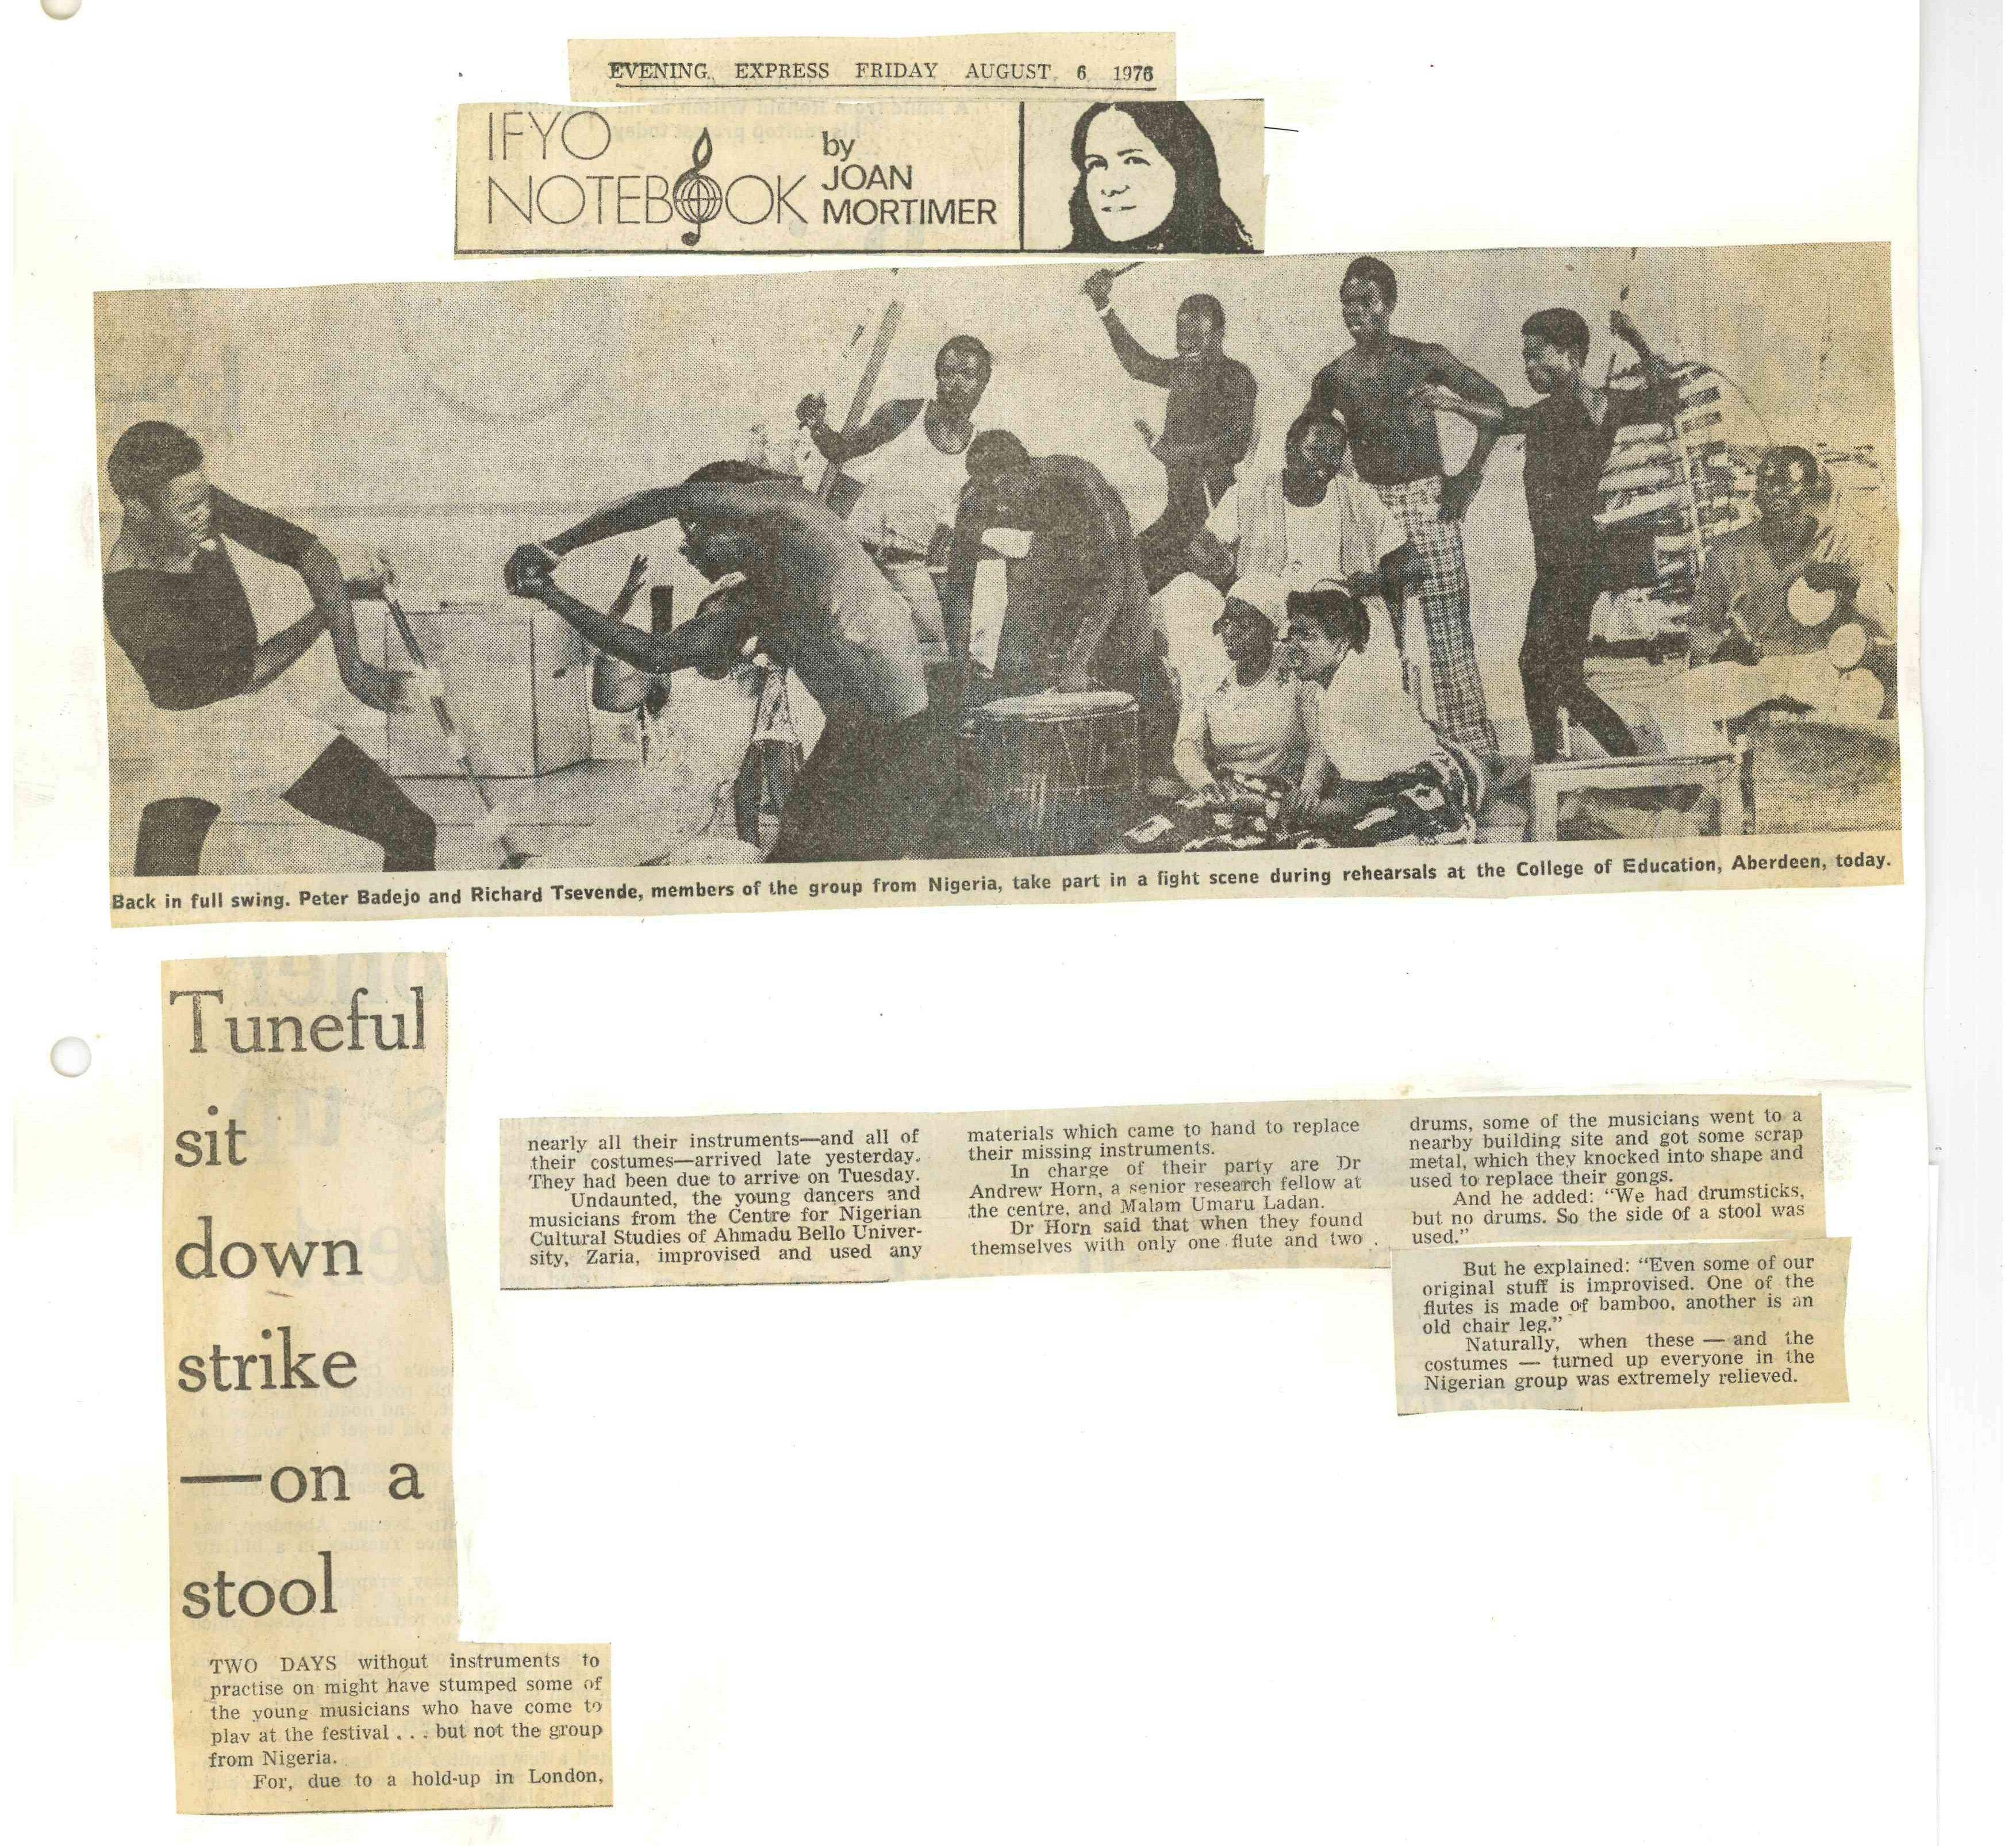 00046-Evening Express- Nigerian group, 6th August 1976.jpg